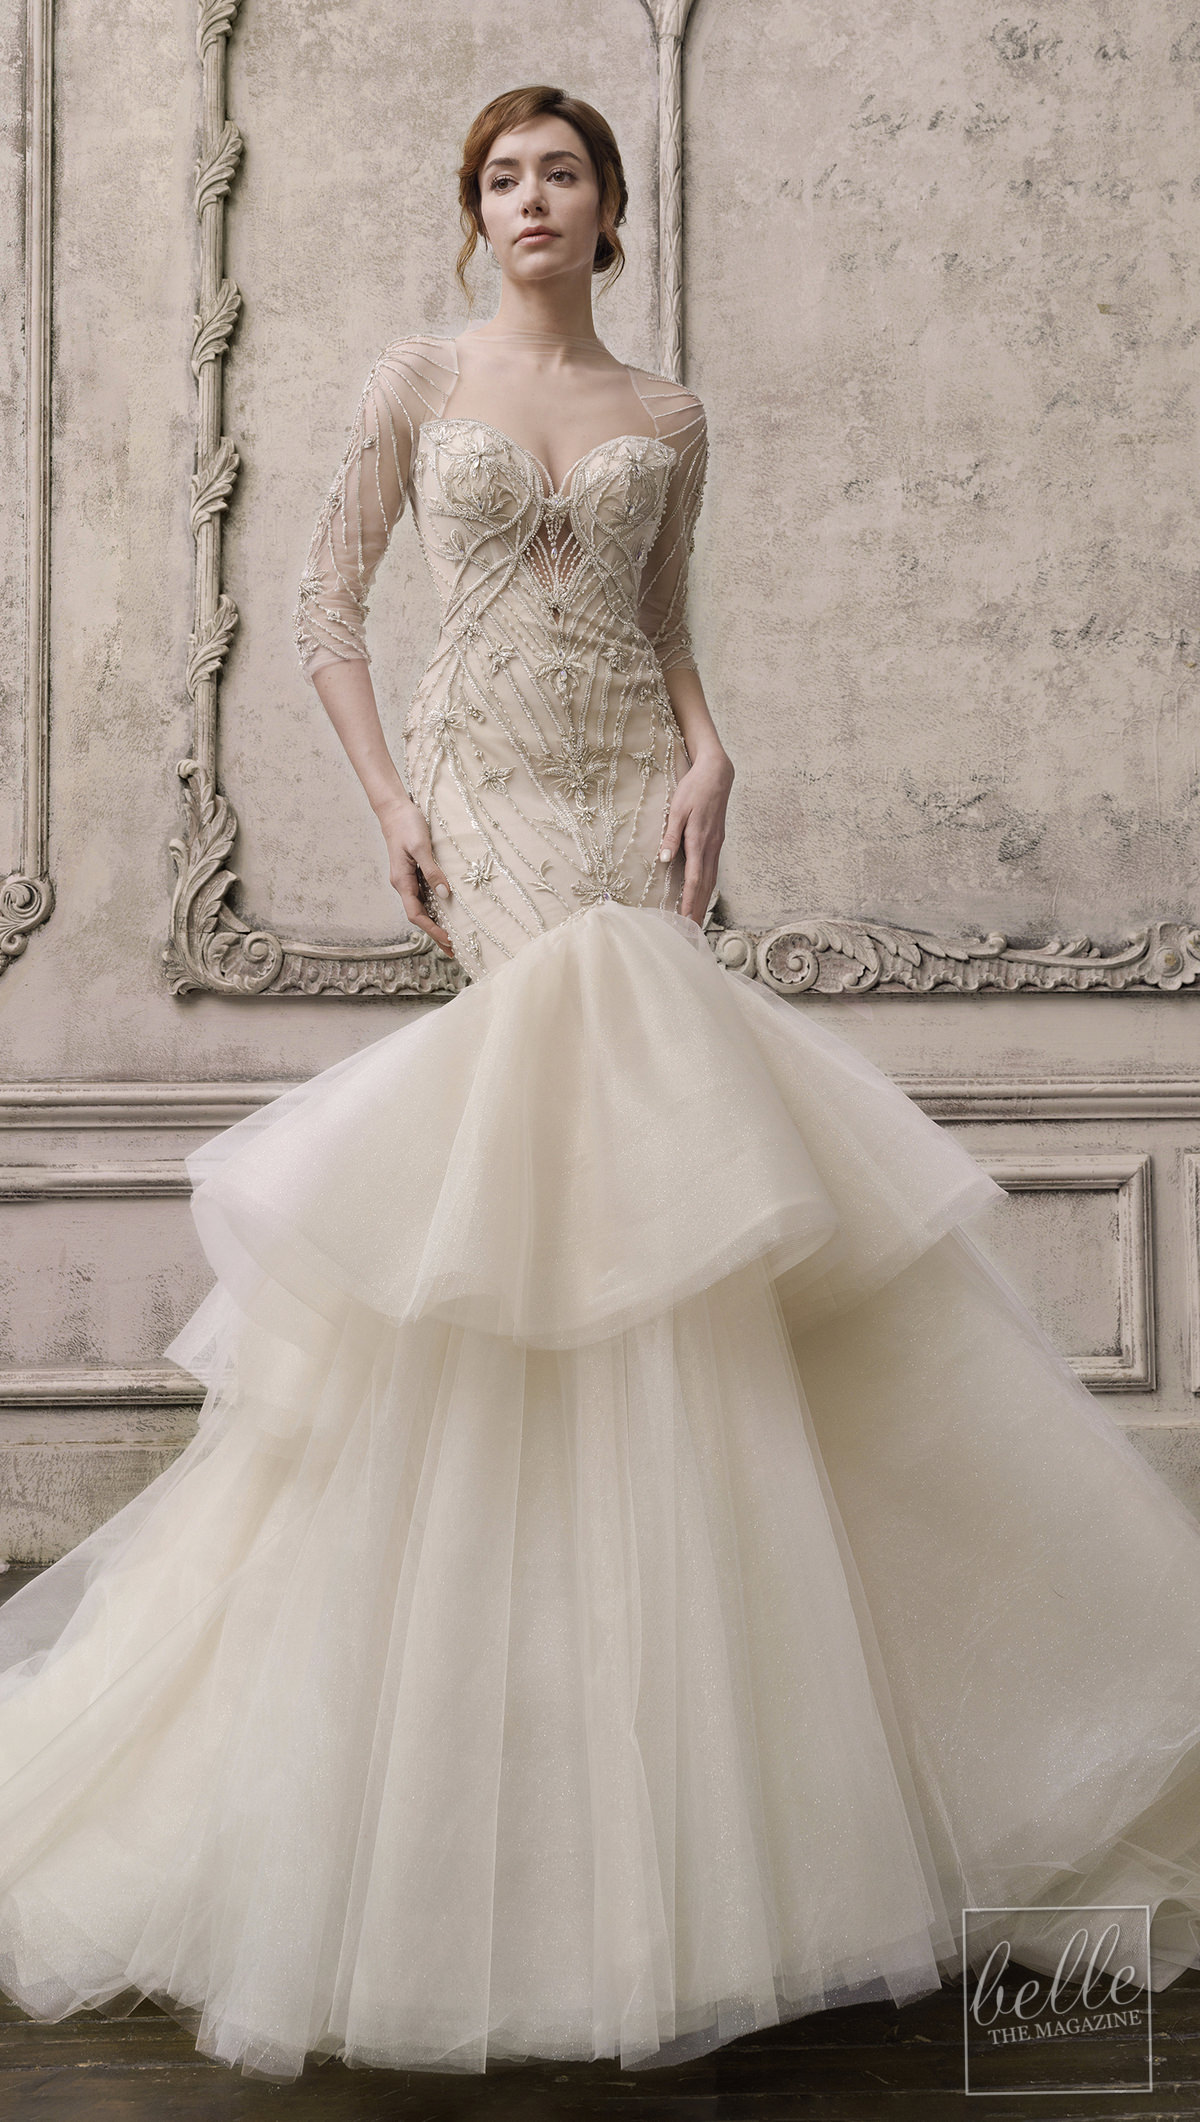 Wedding dress trends 2021 - Ruffles - THE ATELIER COUTURE BY PROFESSOR JIMMY CHOO